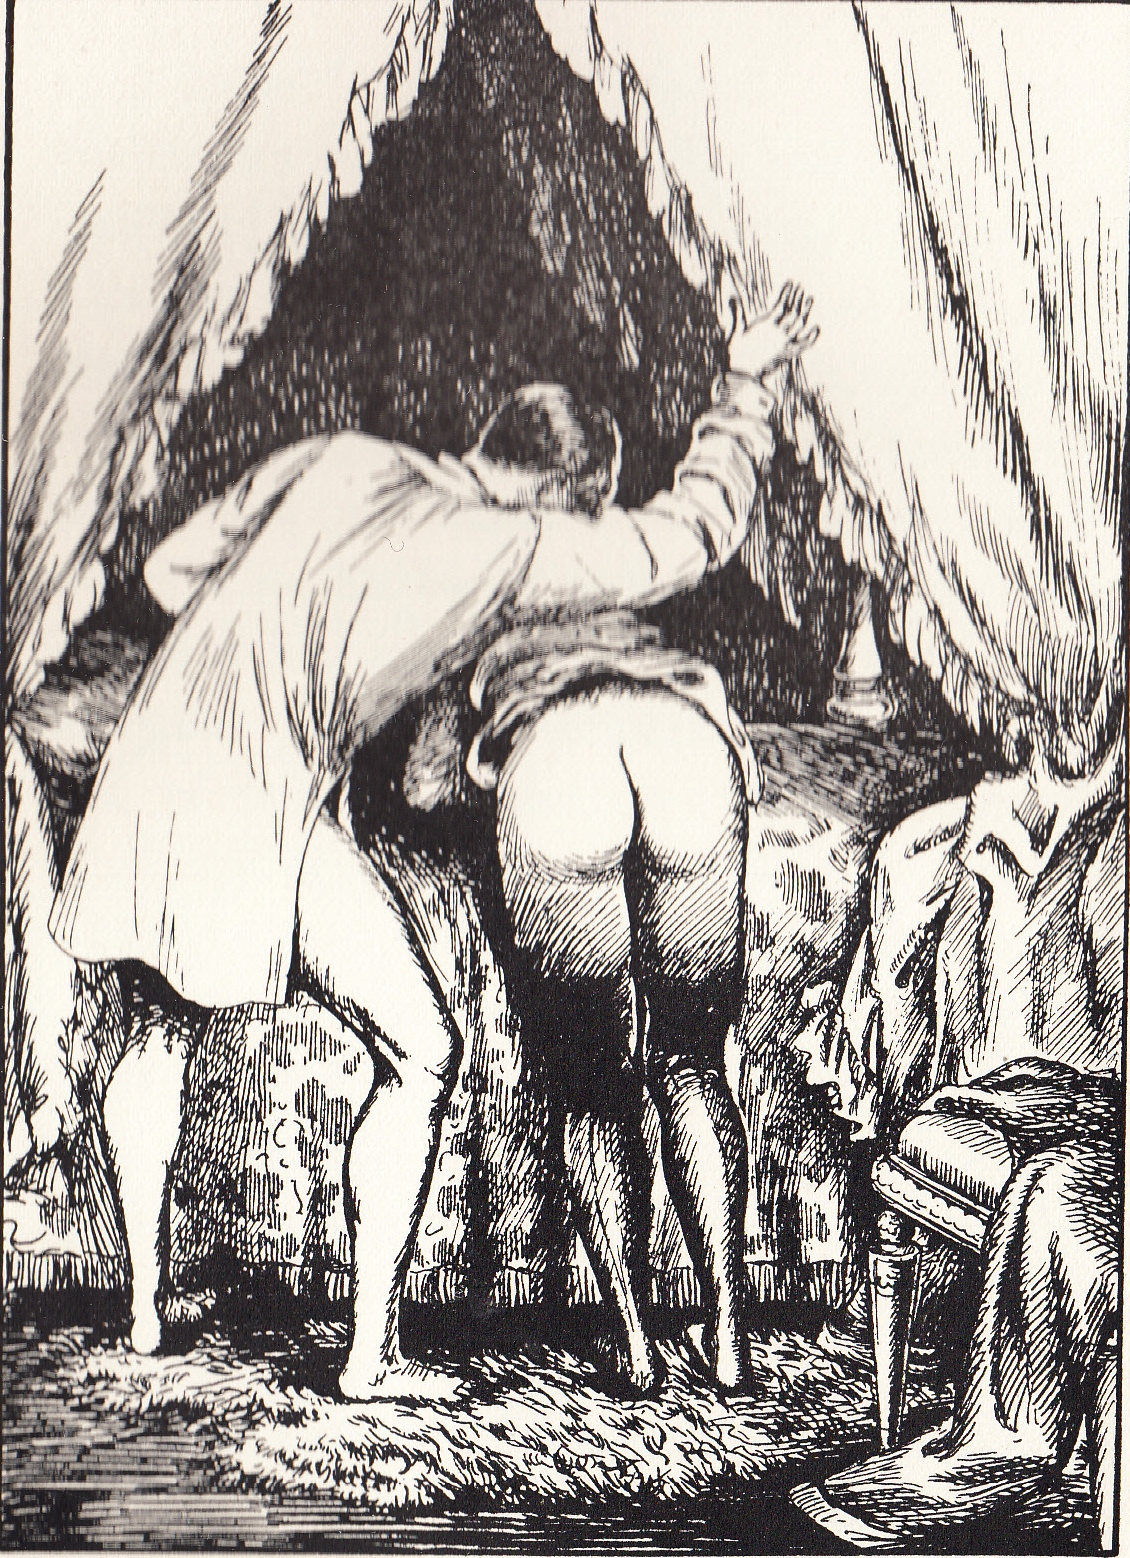 from Kane gay illustrated erotica